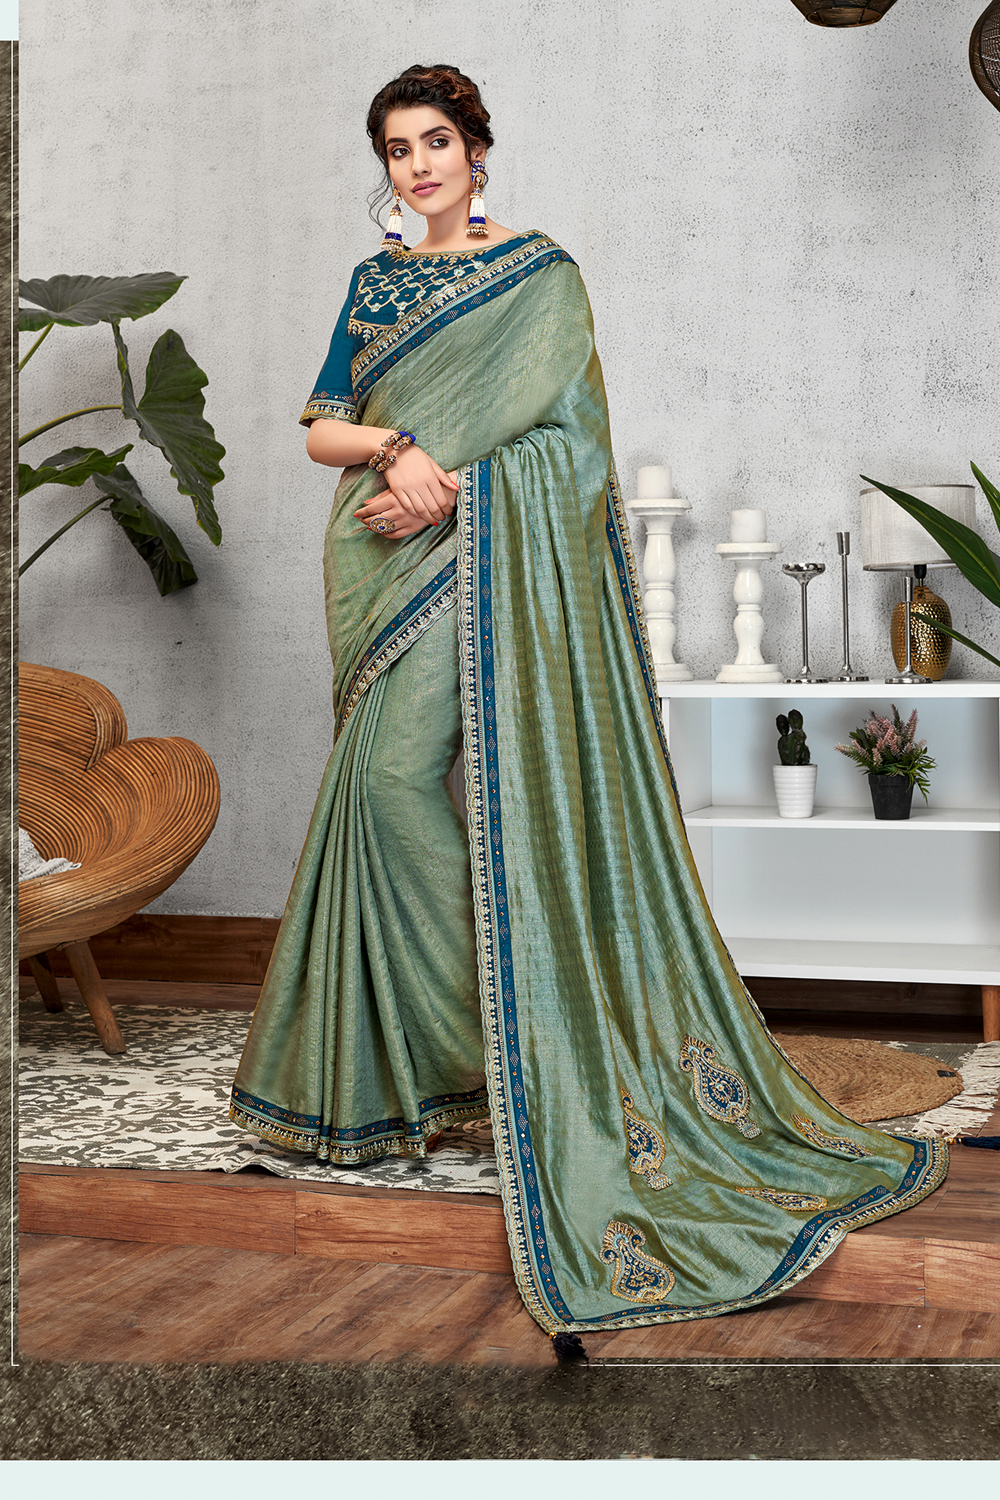 Dual tone silk saree with traditional details